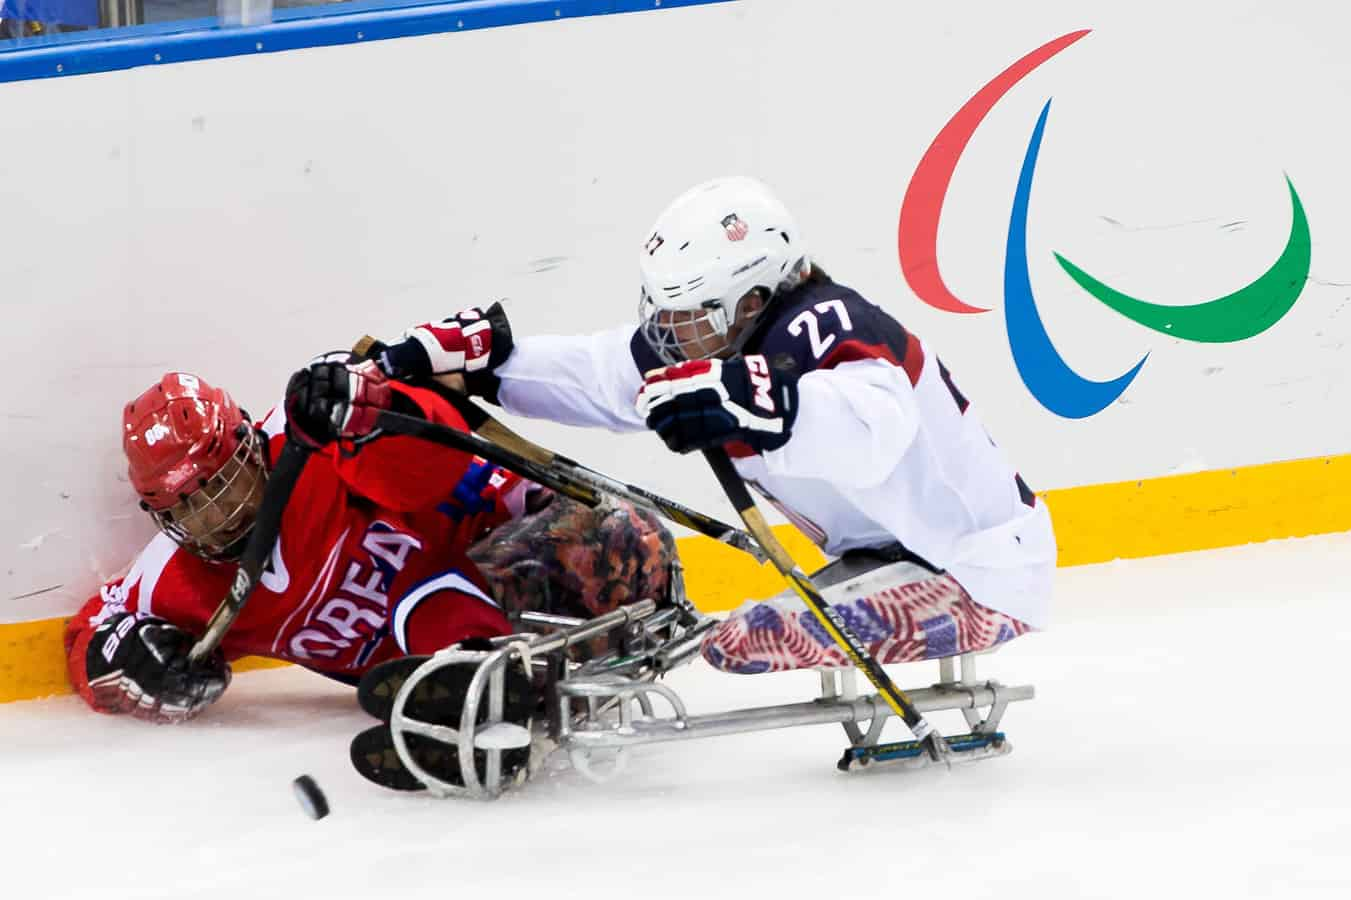 Photo-by-Ken-King---sled-hockey-USA-vs-Korea